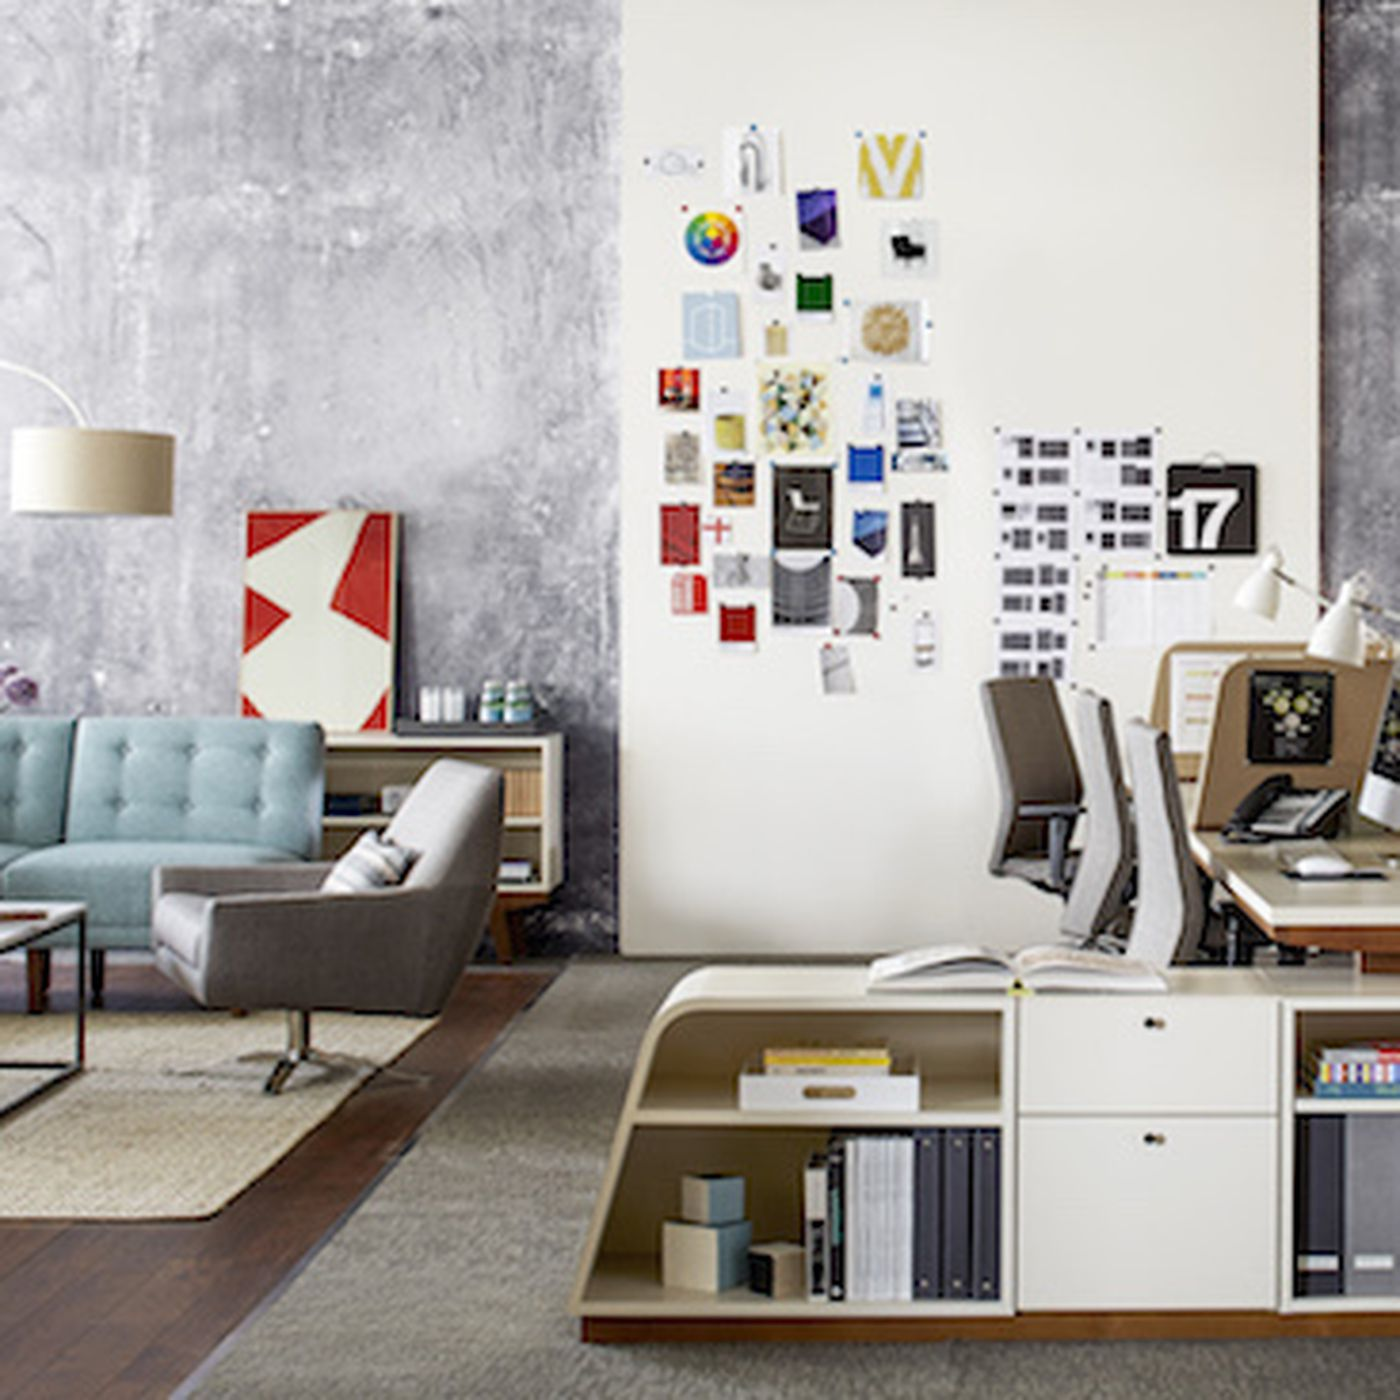 New West Elm Office Furniture Line Gives You Midcentury Style But